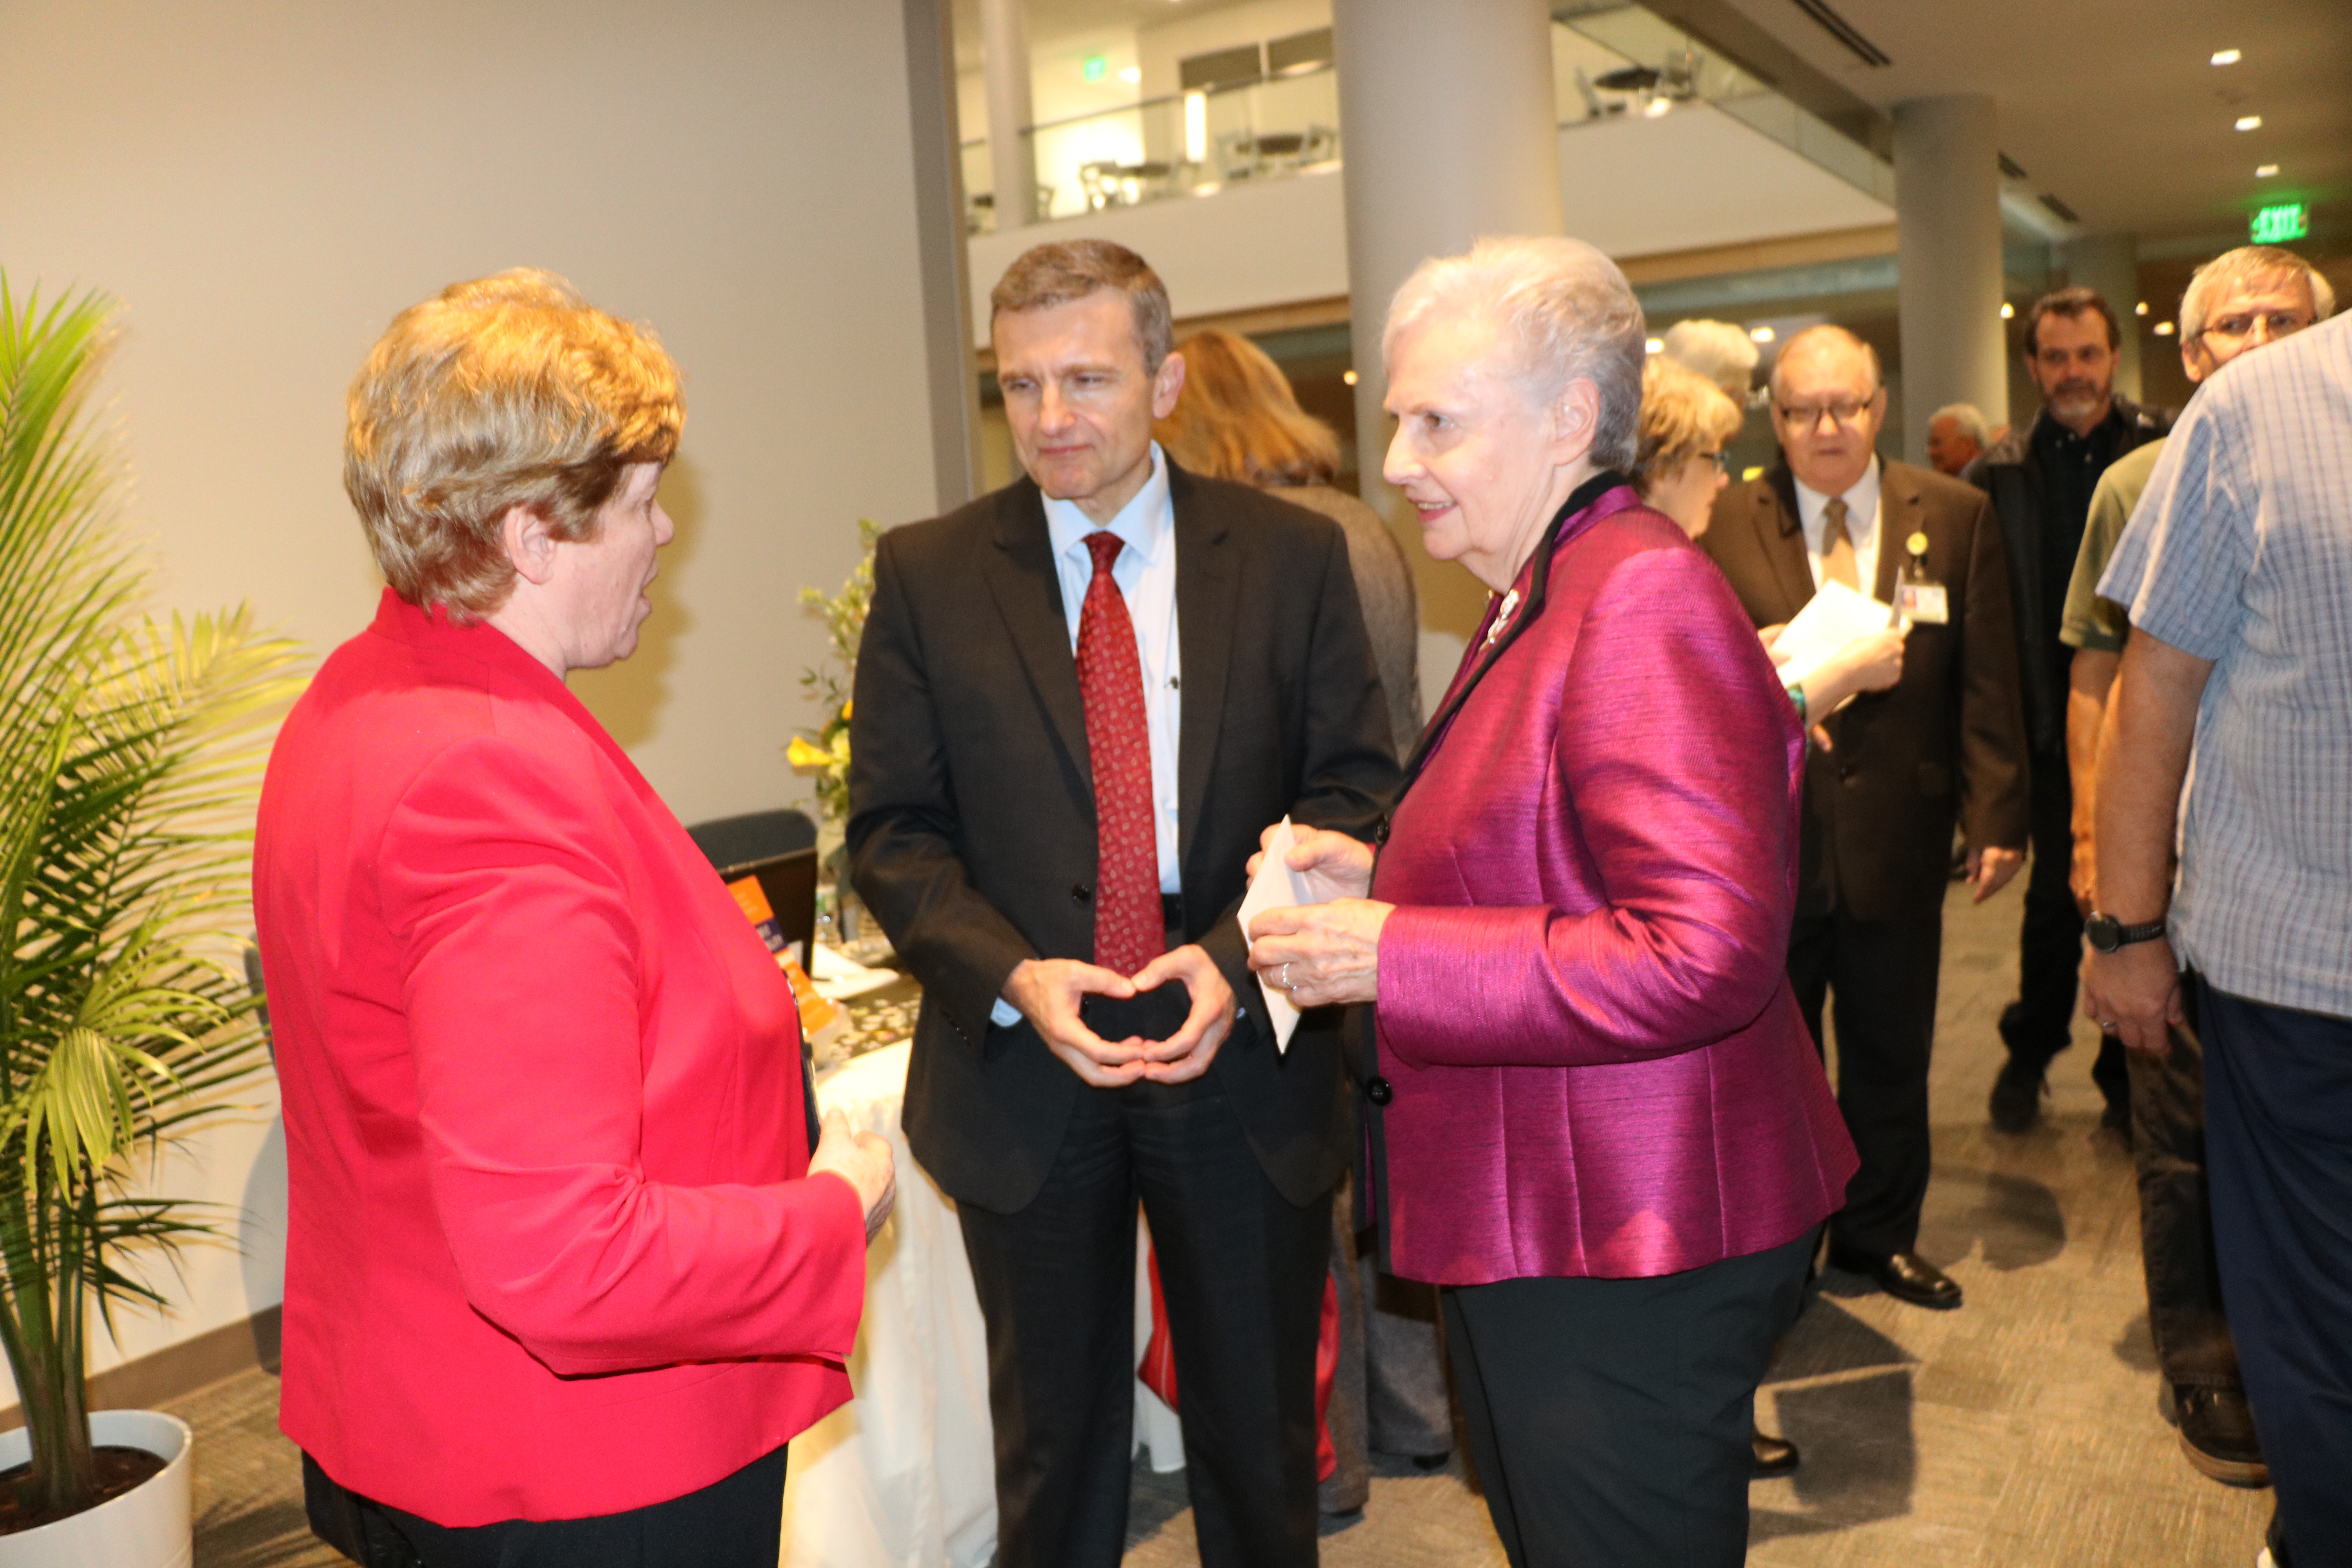 Dr. Wagner greeting our speaker Dr. Amir Pasic, Dean of the Lilly Family School of Philanthropy and our many guests.